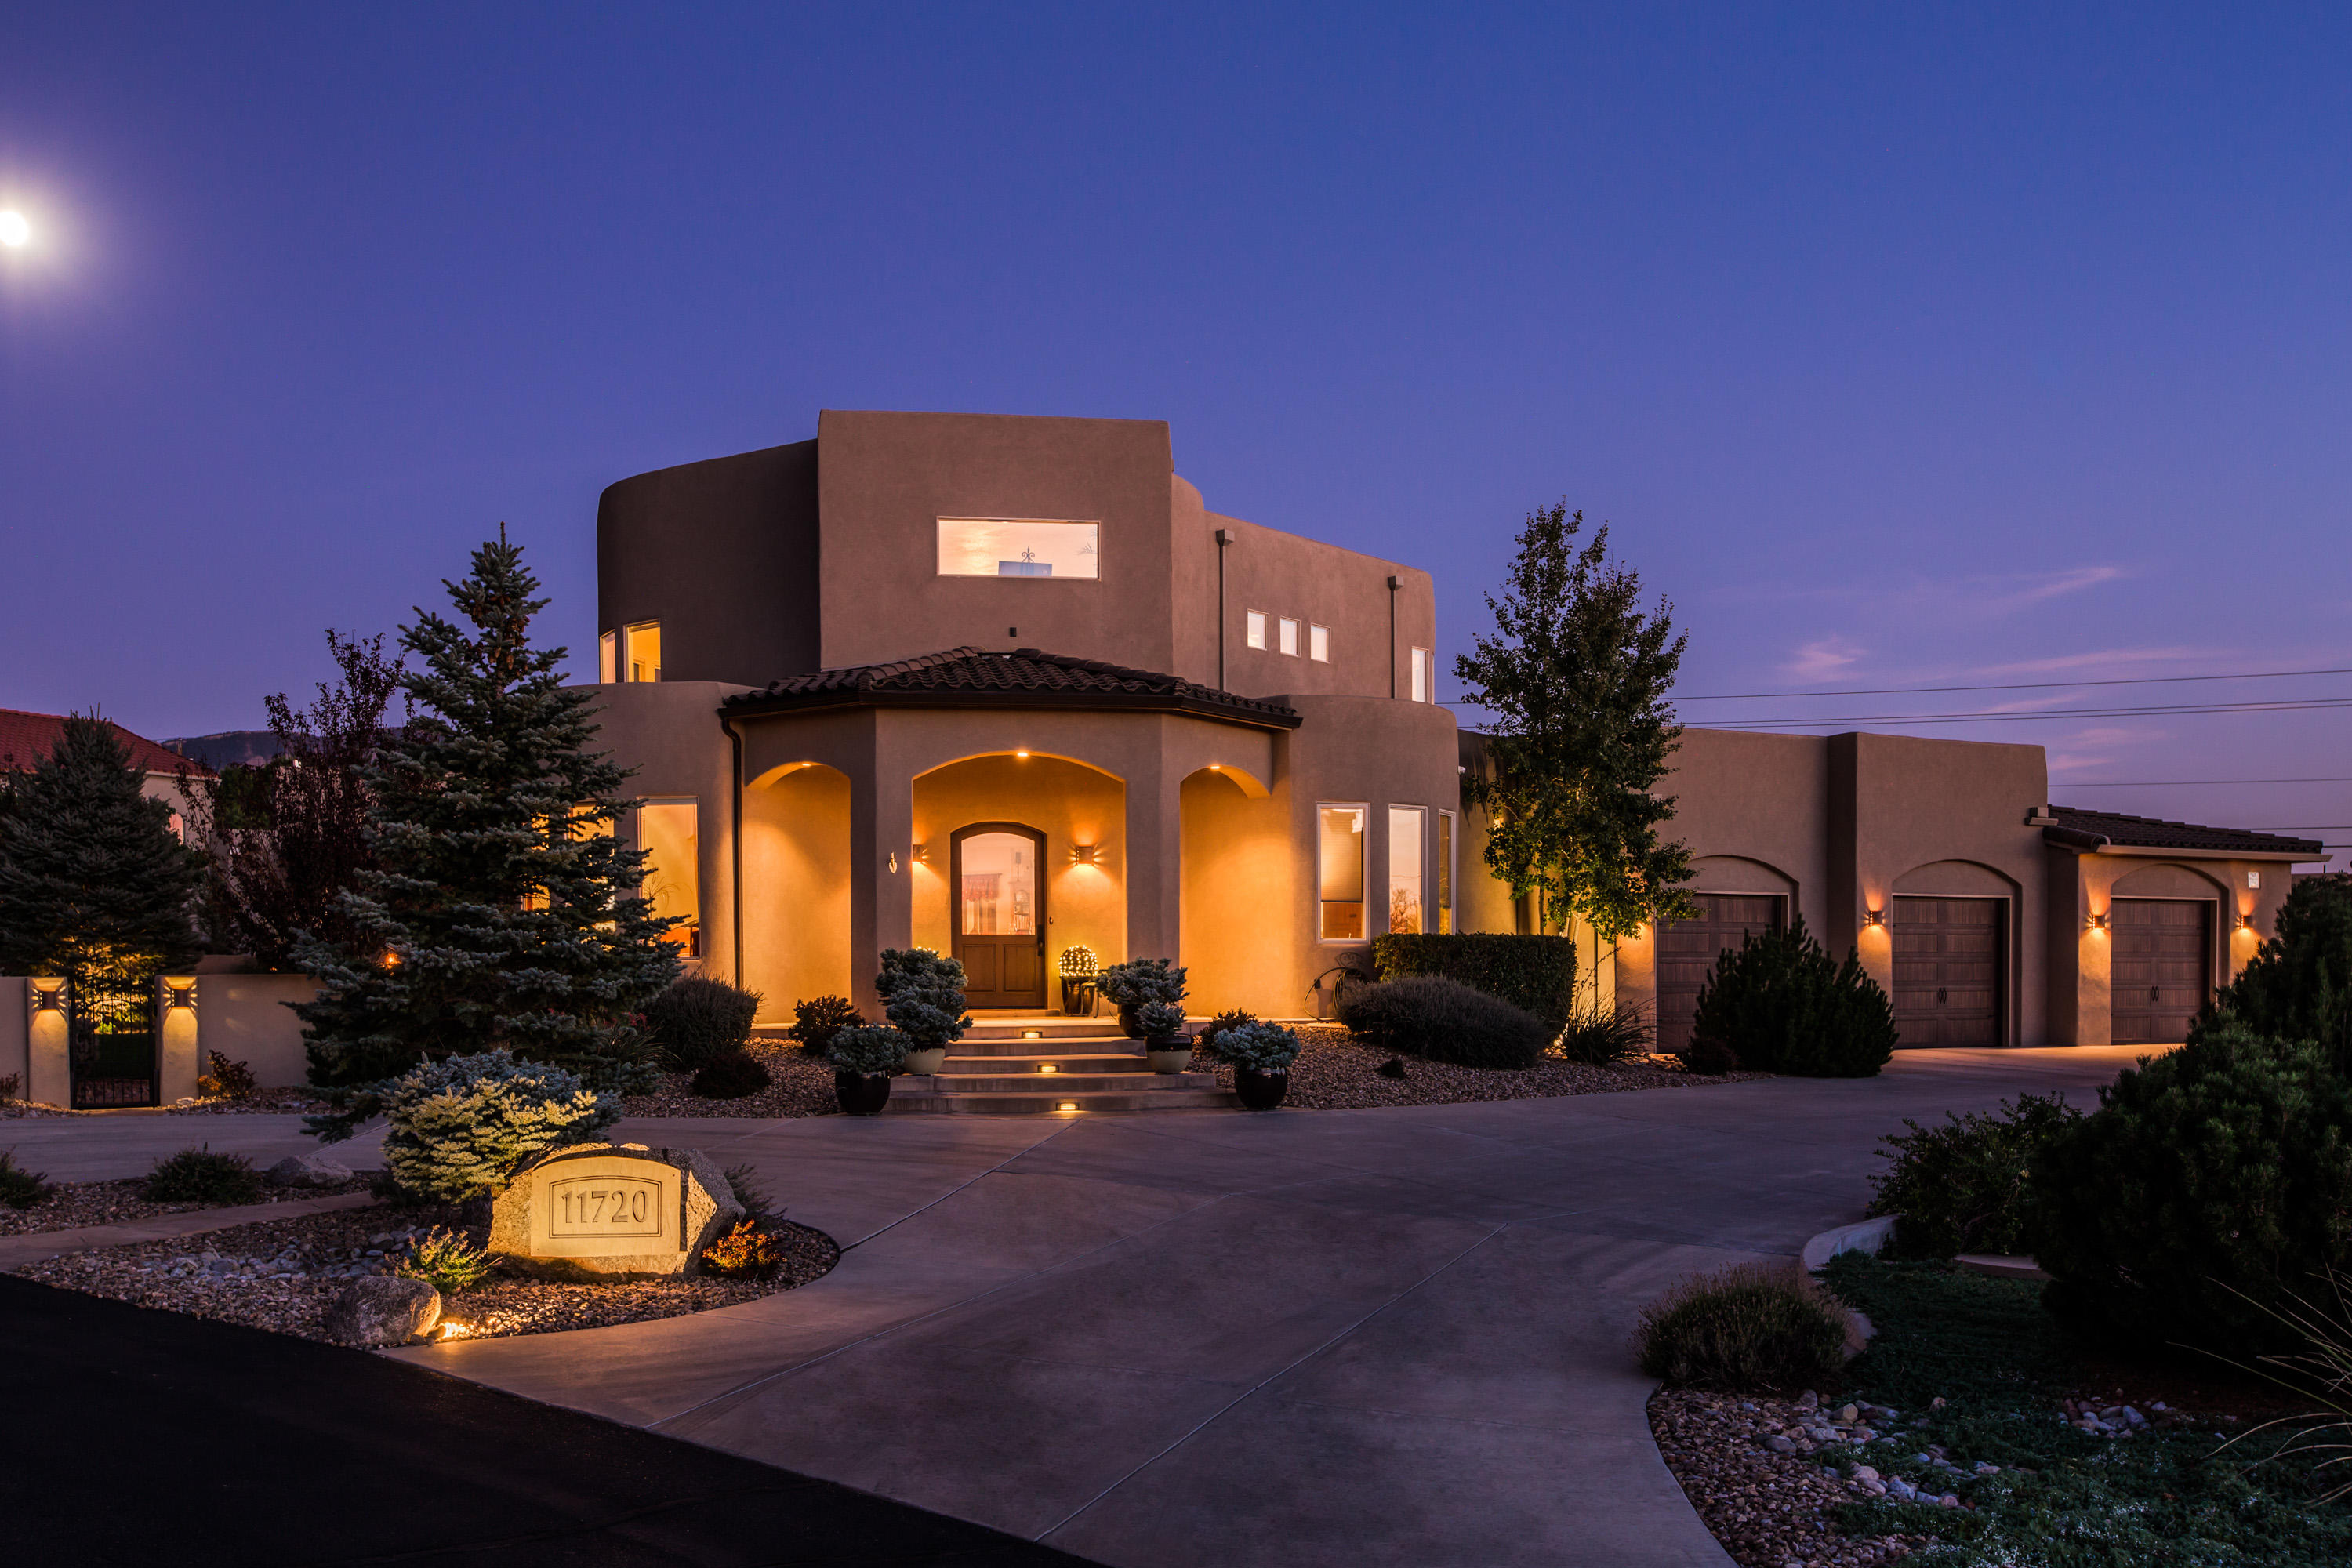 Exquisite Custom Built Masterpiece w/Stunning Views! Impressive architectural details paired with fine appointments throughout, make this home a North Albq Acres 'One of a Kind.'  Enjoy Sandia views from main living area w/custom two-way fireplace shared w/formal dining room & opening to Gourmet Chef's Kitchen boasting gorgeous cabinets/counters; eat at island; Built-in SS appliances; two sep sinks; wine cooler, plus. Upper level has library; exercise & office spaces, Plus: Luxurious Master retreat that includes TWO balconies to enjoy Mtn & City/mesa views! Spa like en suite w/walk-in closet & builtins. Lush landscaped backyard features mtn views from expansive covered patio; builtin firepit; rock waterfall; & hot tub. Garage is car enthusiast's dream. See 'Feature Sheet' for more details.